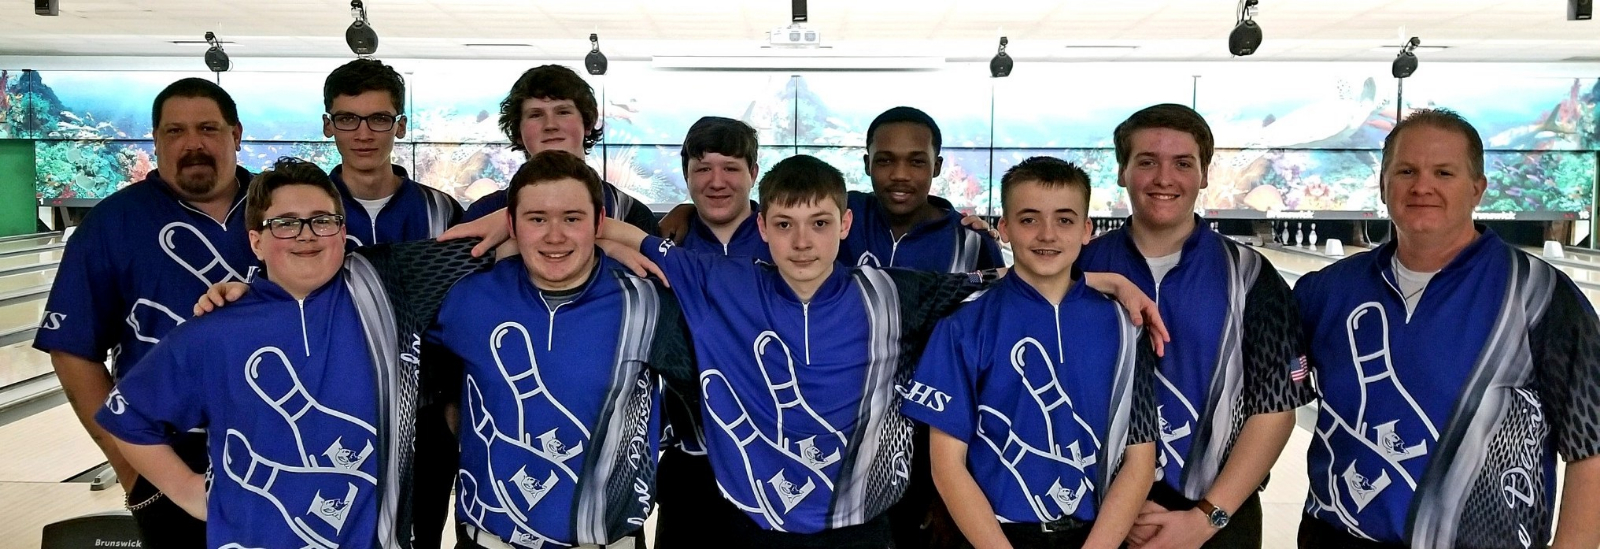 Congratulations to the LHS Boys Bowling Team-They are headed to the TSSAA State Bowling Tournament